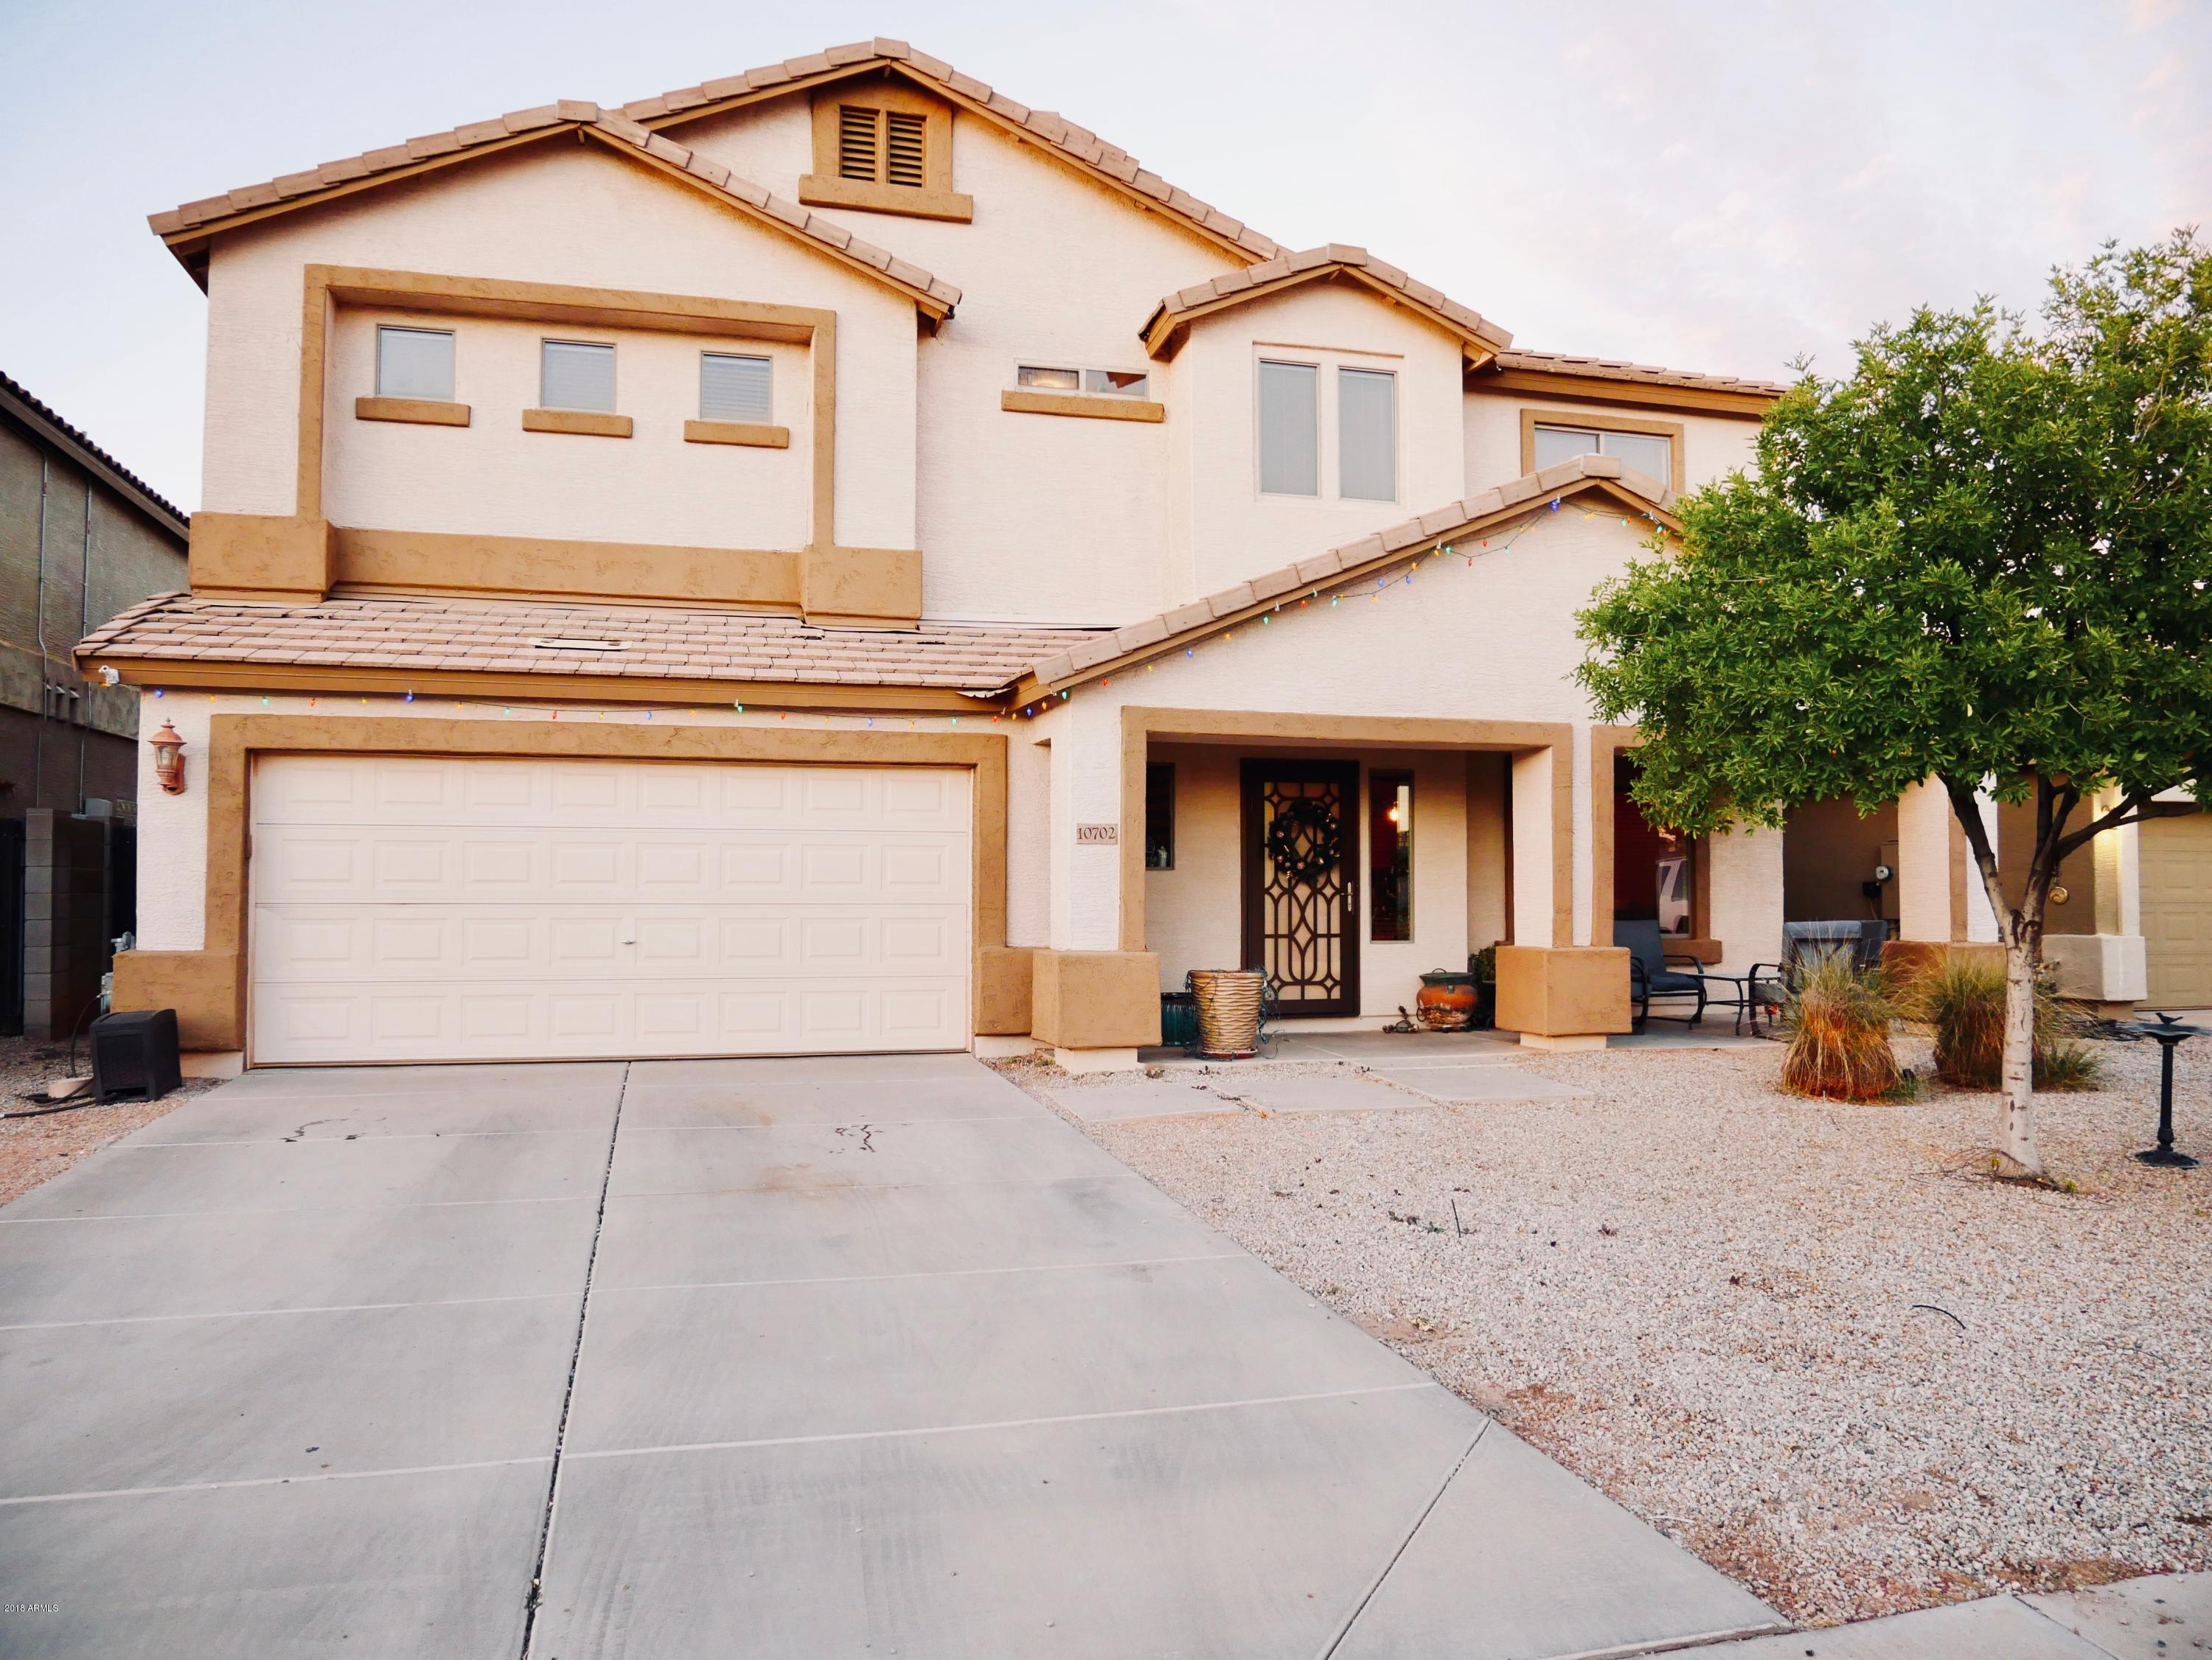 Photo for 10702 E Marigold Lane, Florence, AZ 85132 (MLS # 5852775)